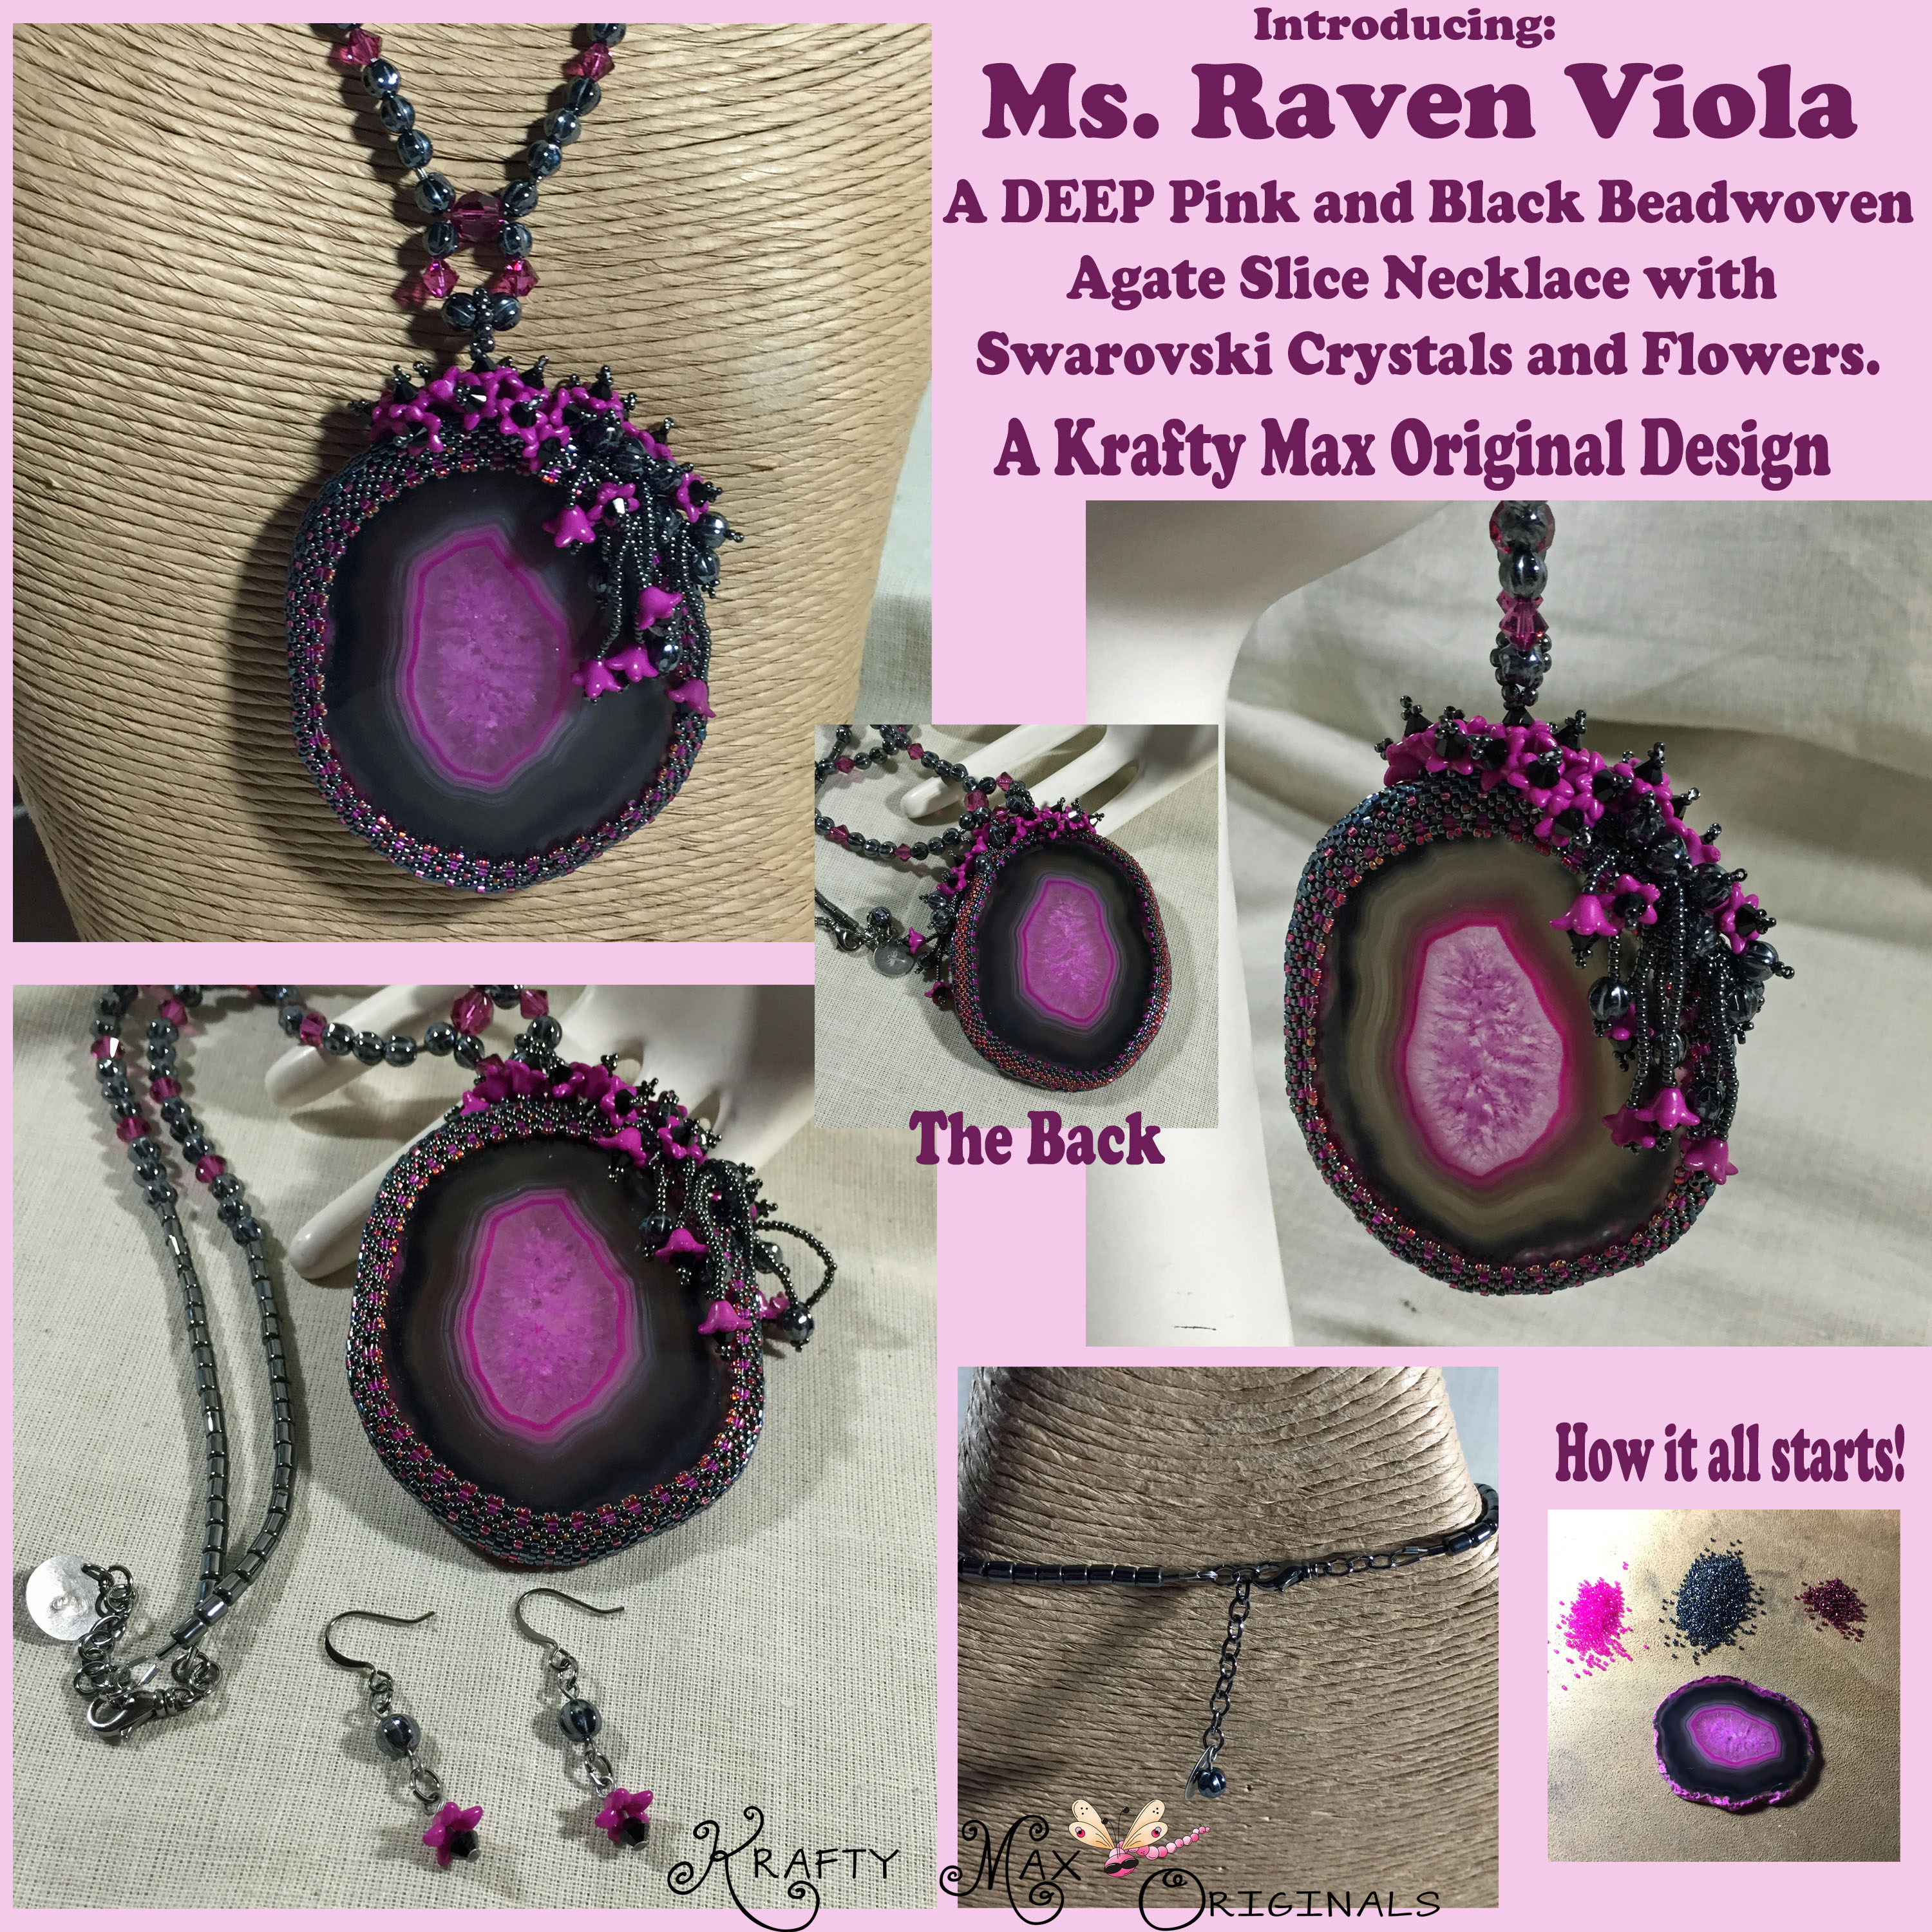 Ms. Raven Viola Handmade Beadwoven Sliced Agate and Swarovski Necklace